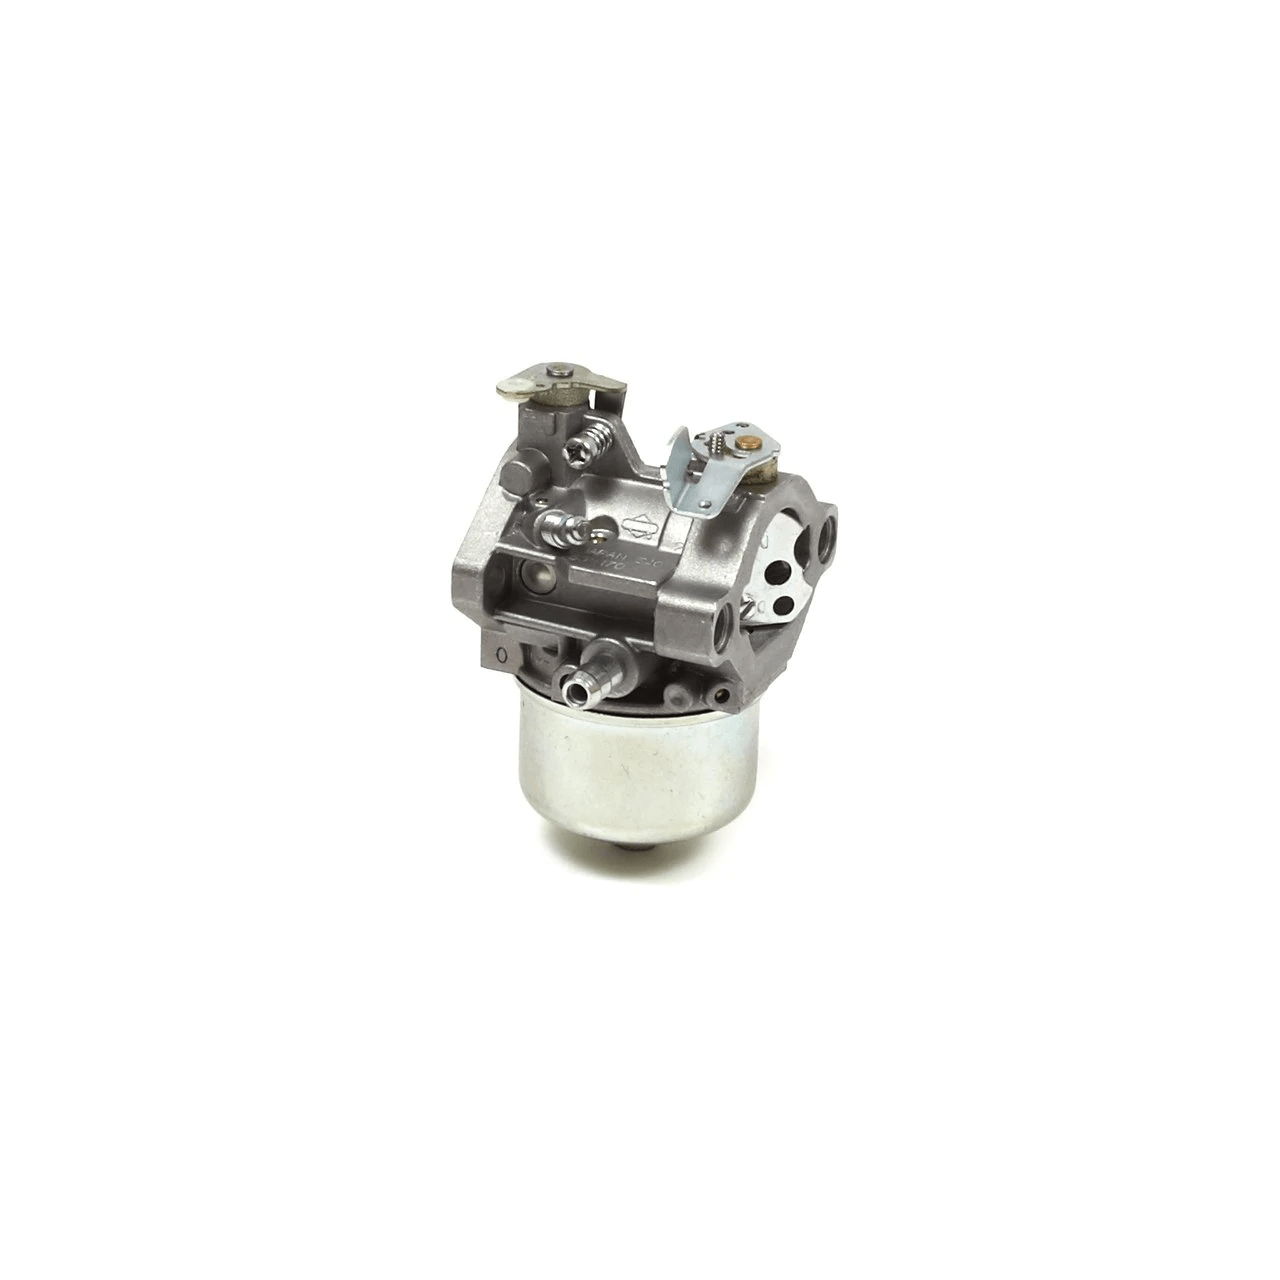 small resolution of briggs stratton 698171 carburetor where used part number 698171 model name diagram 283702